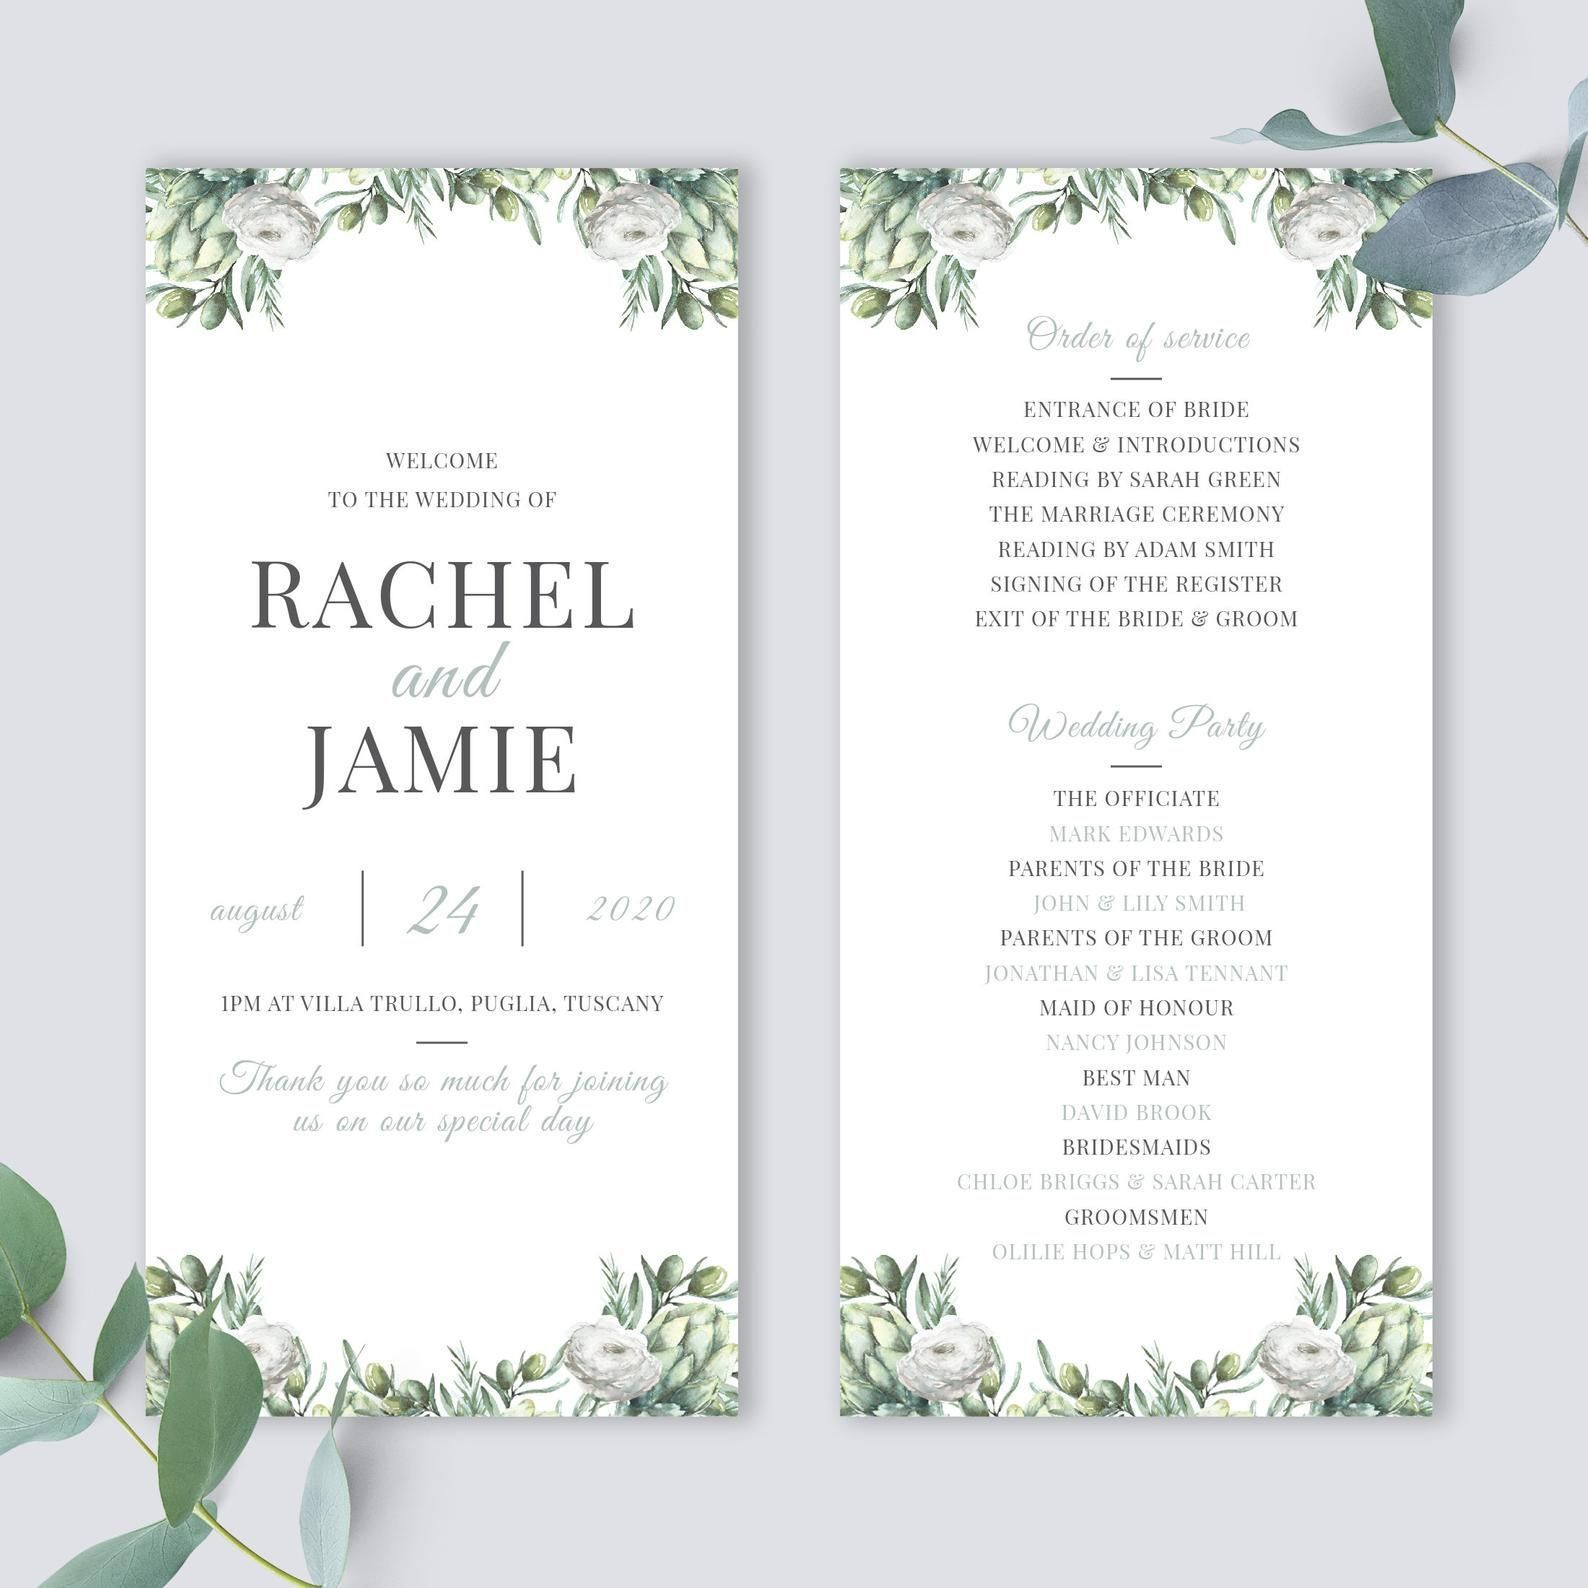 010 Awful Wedding Order Of Service Template Free Picture  Front Cover Download ChurchFull